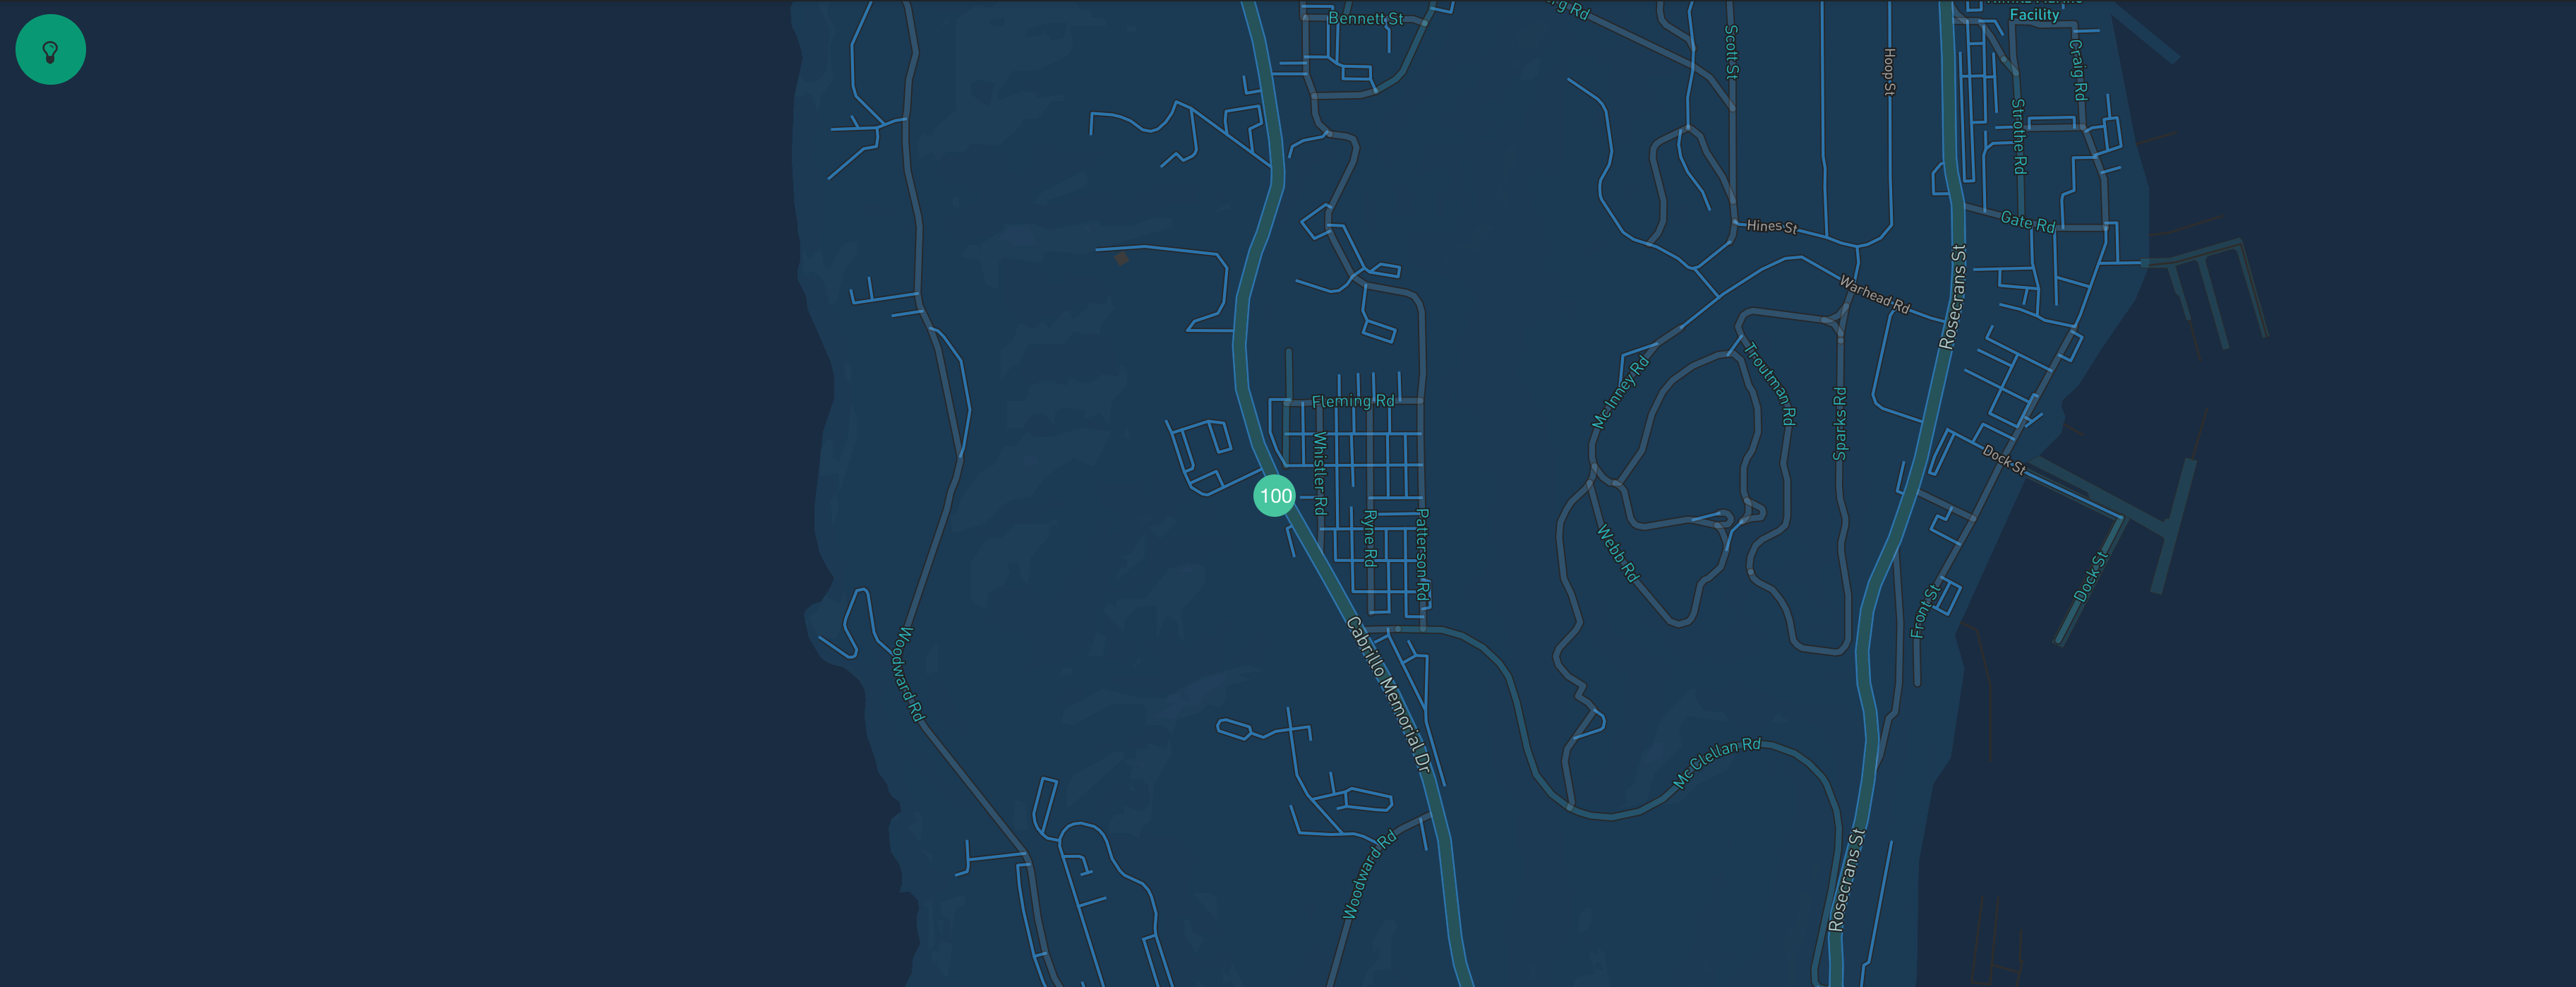 geohash query result map